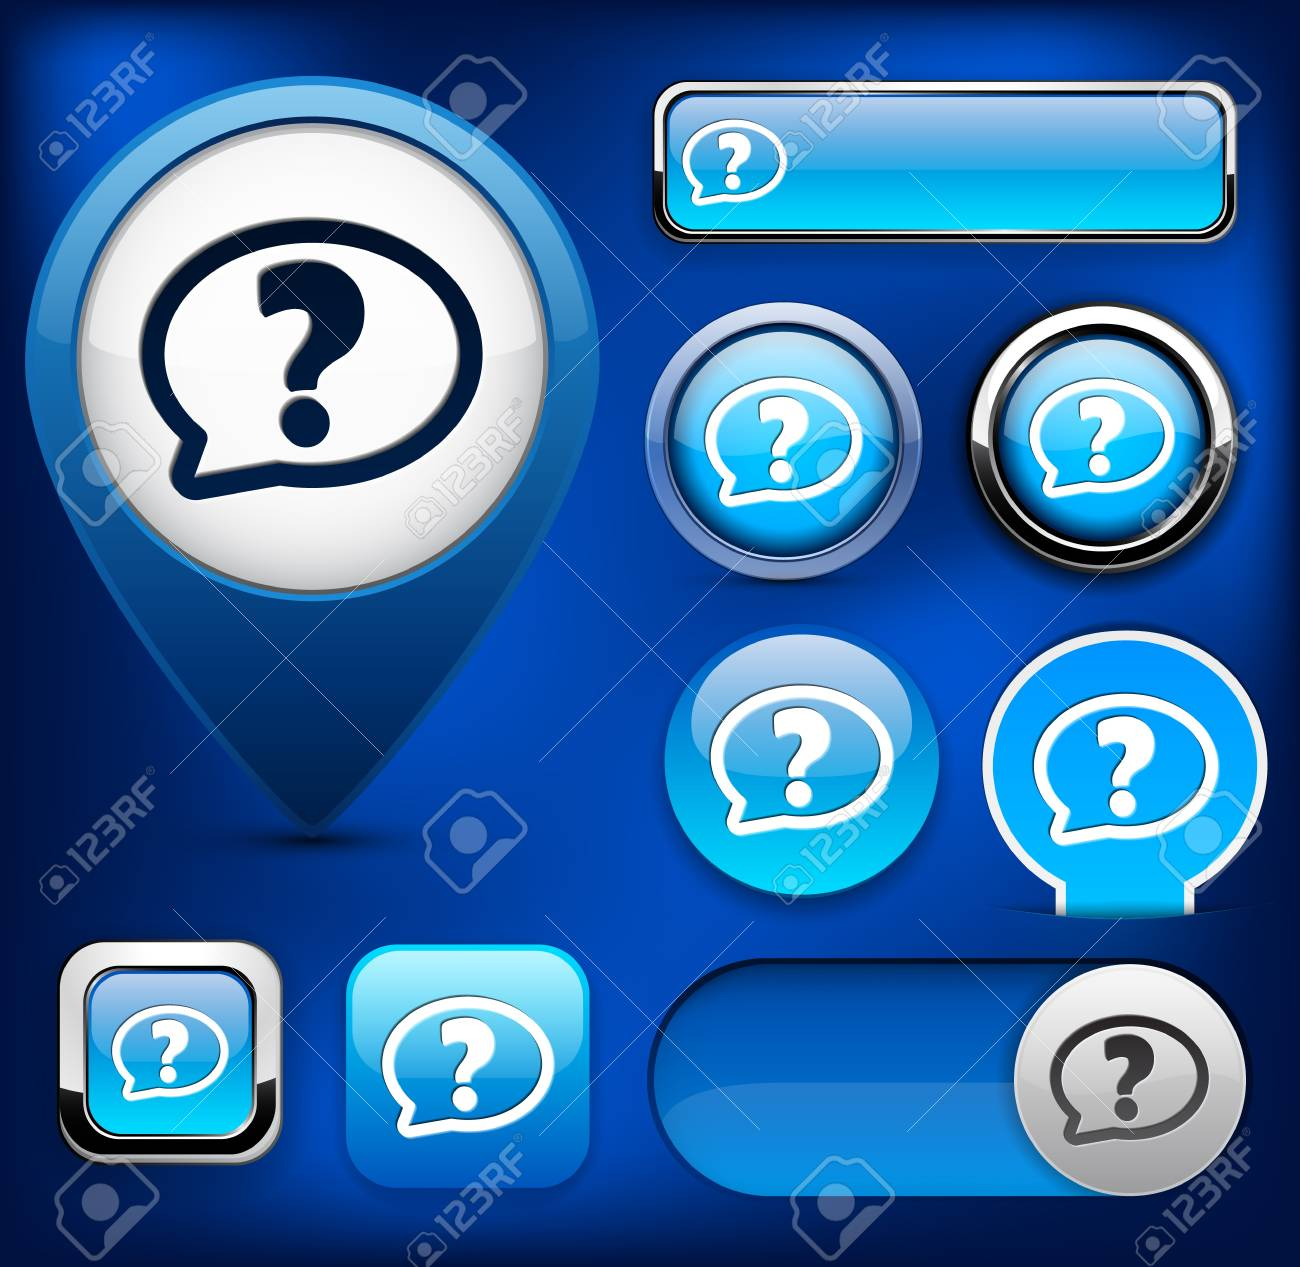 FAQ blue design elements for website or app Stock Vector - 13129018